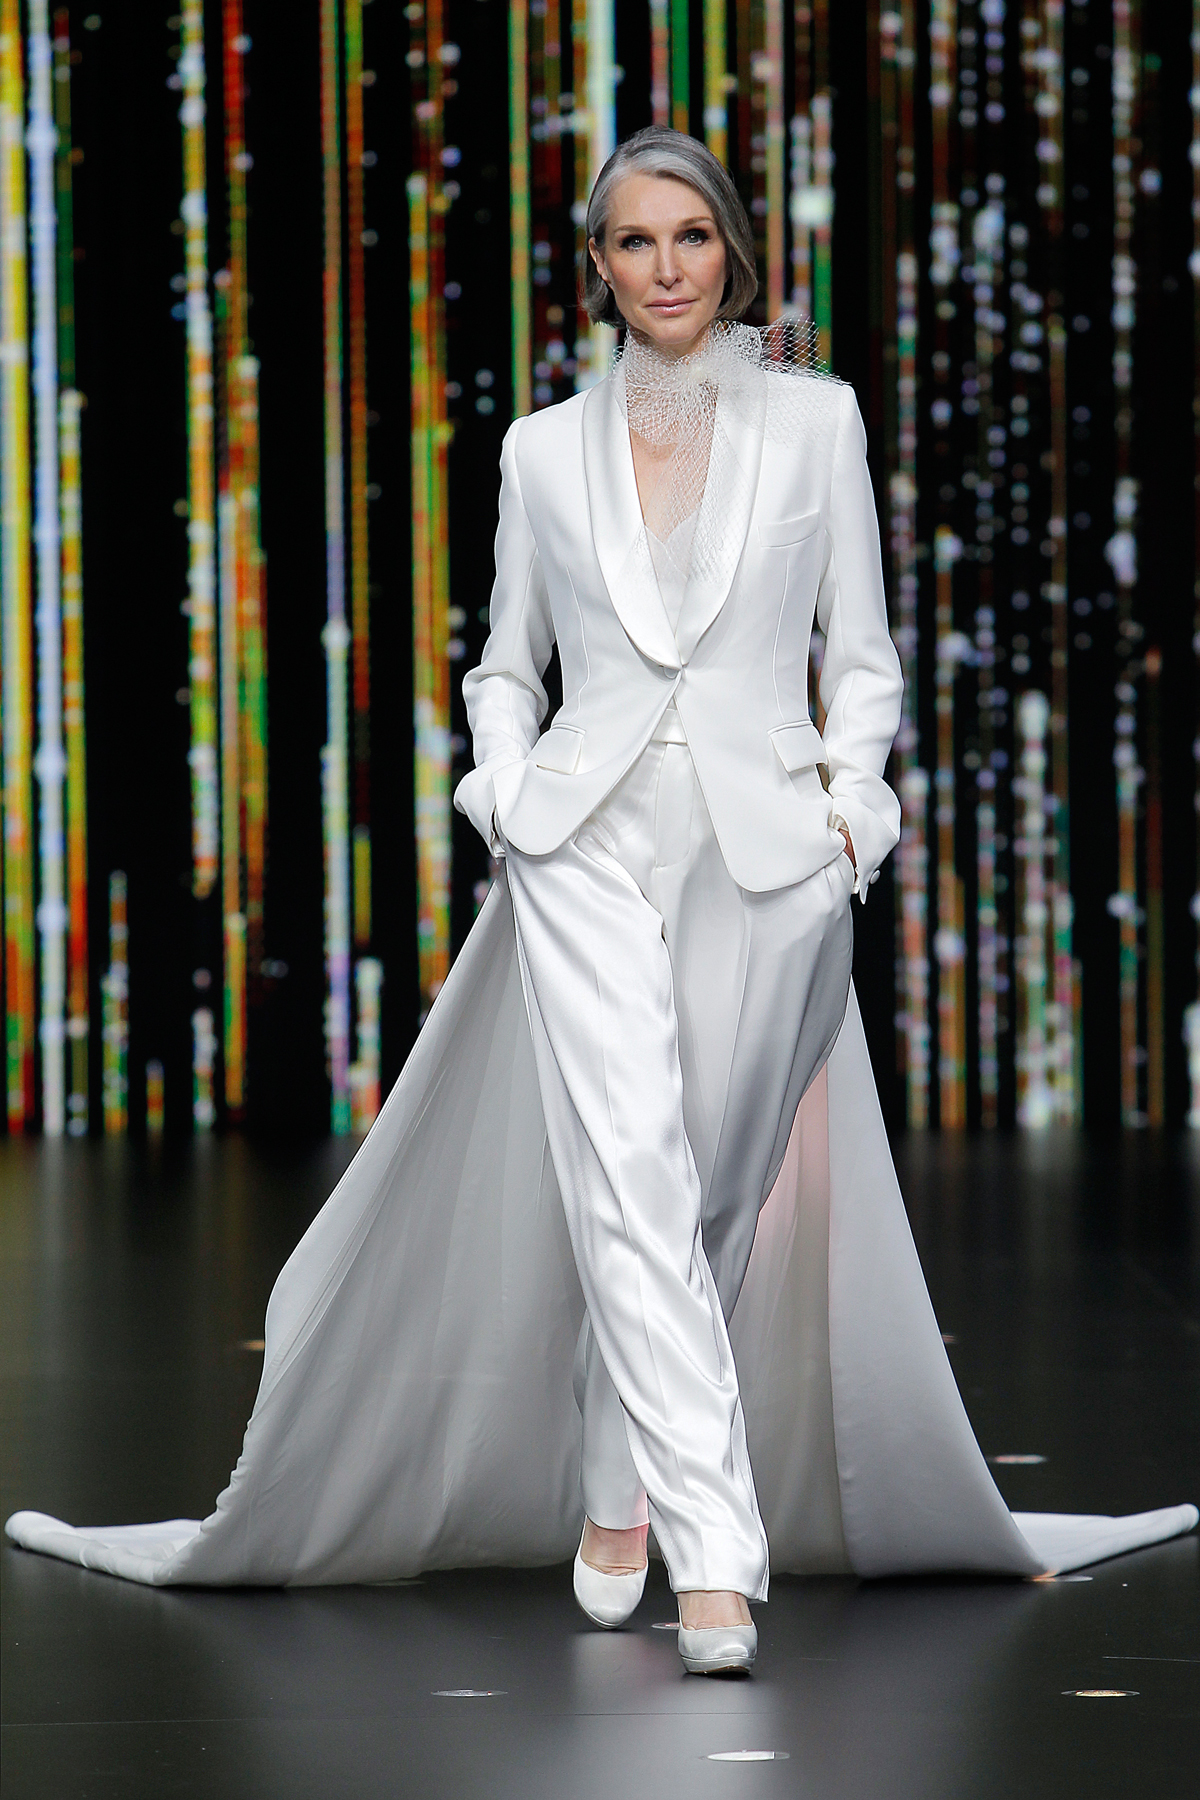 pronovias pantsuit with train wedding dress spring 2020